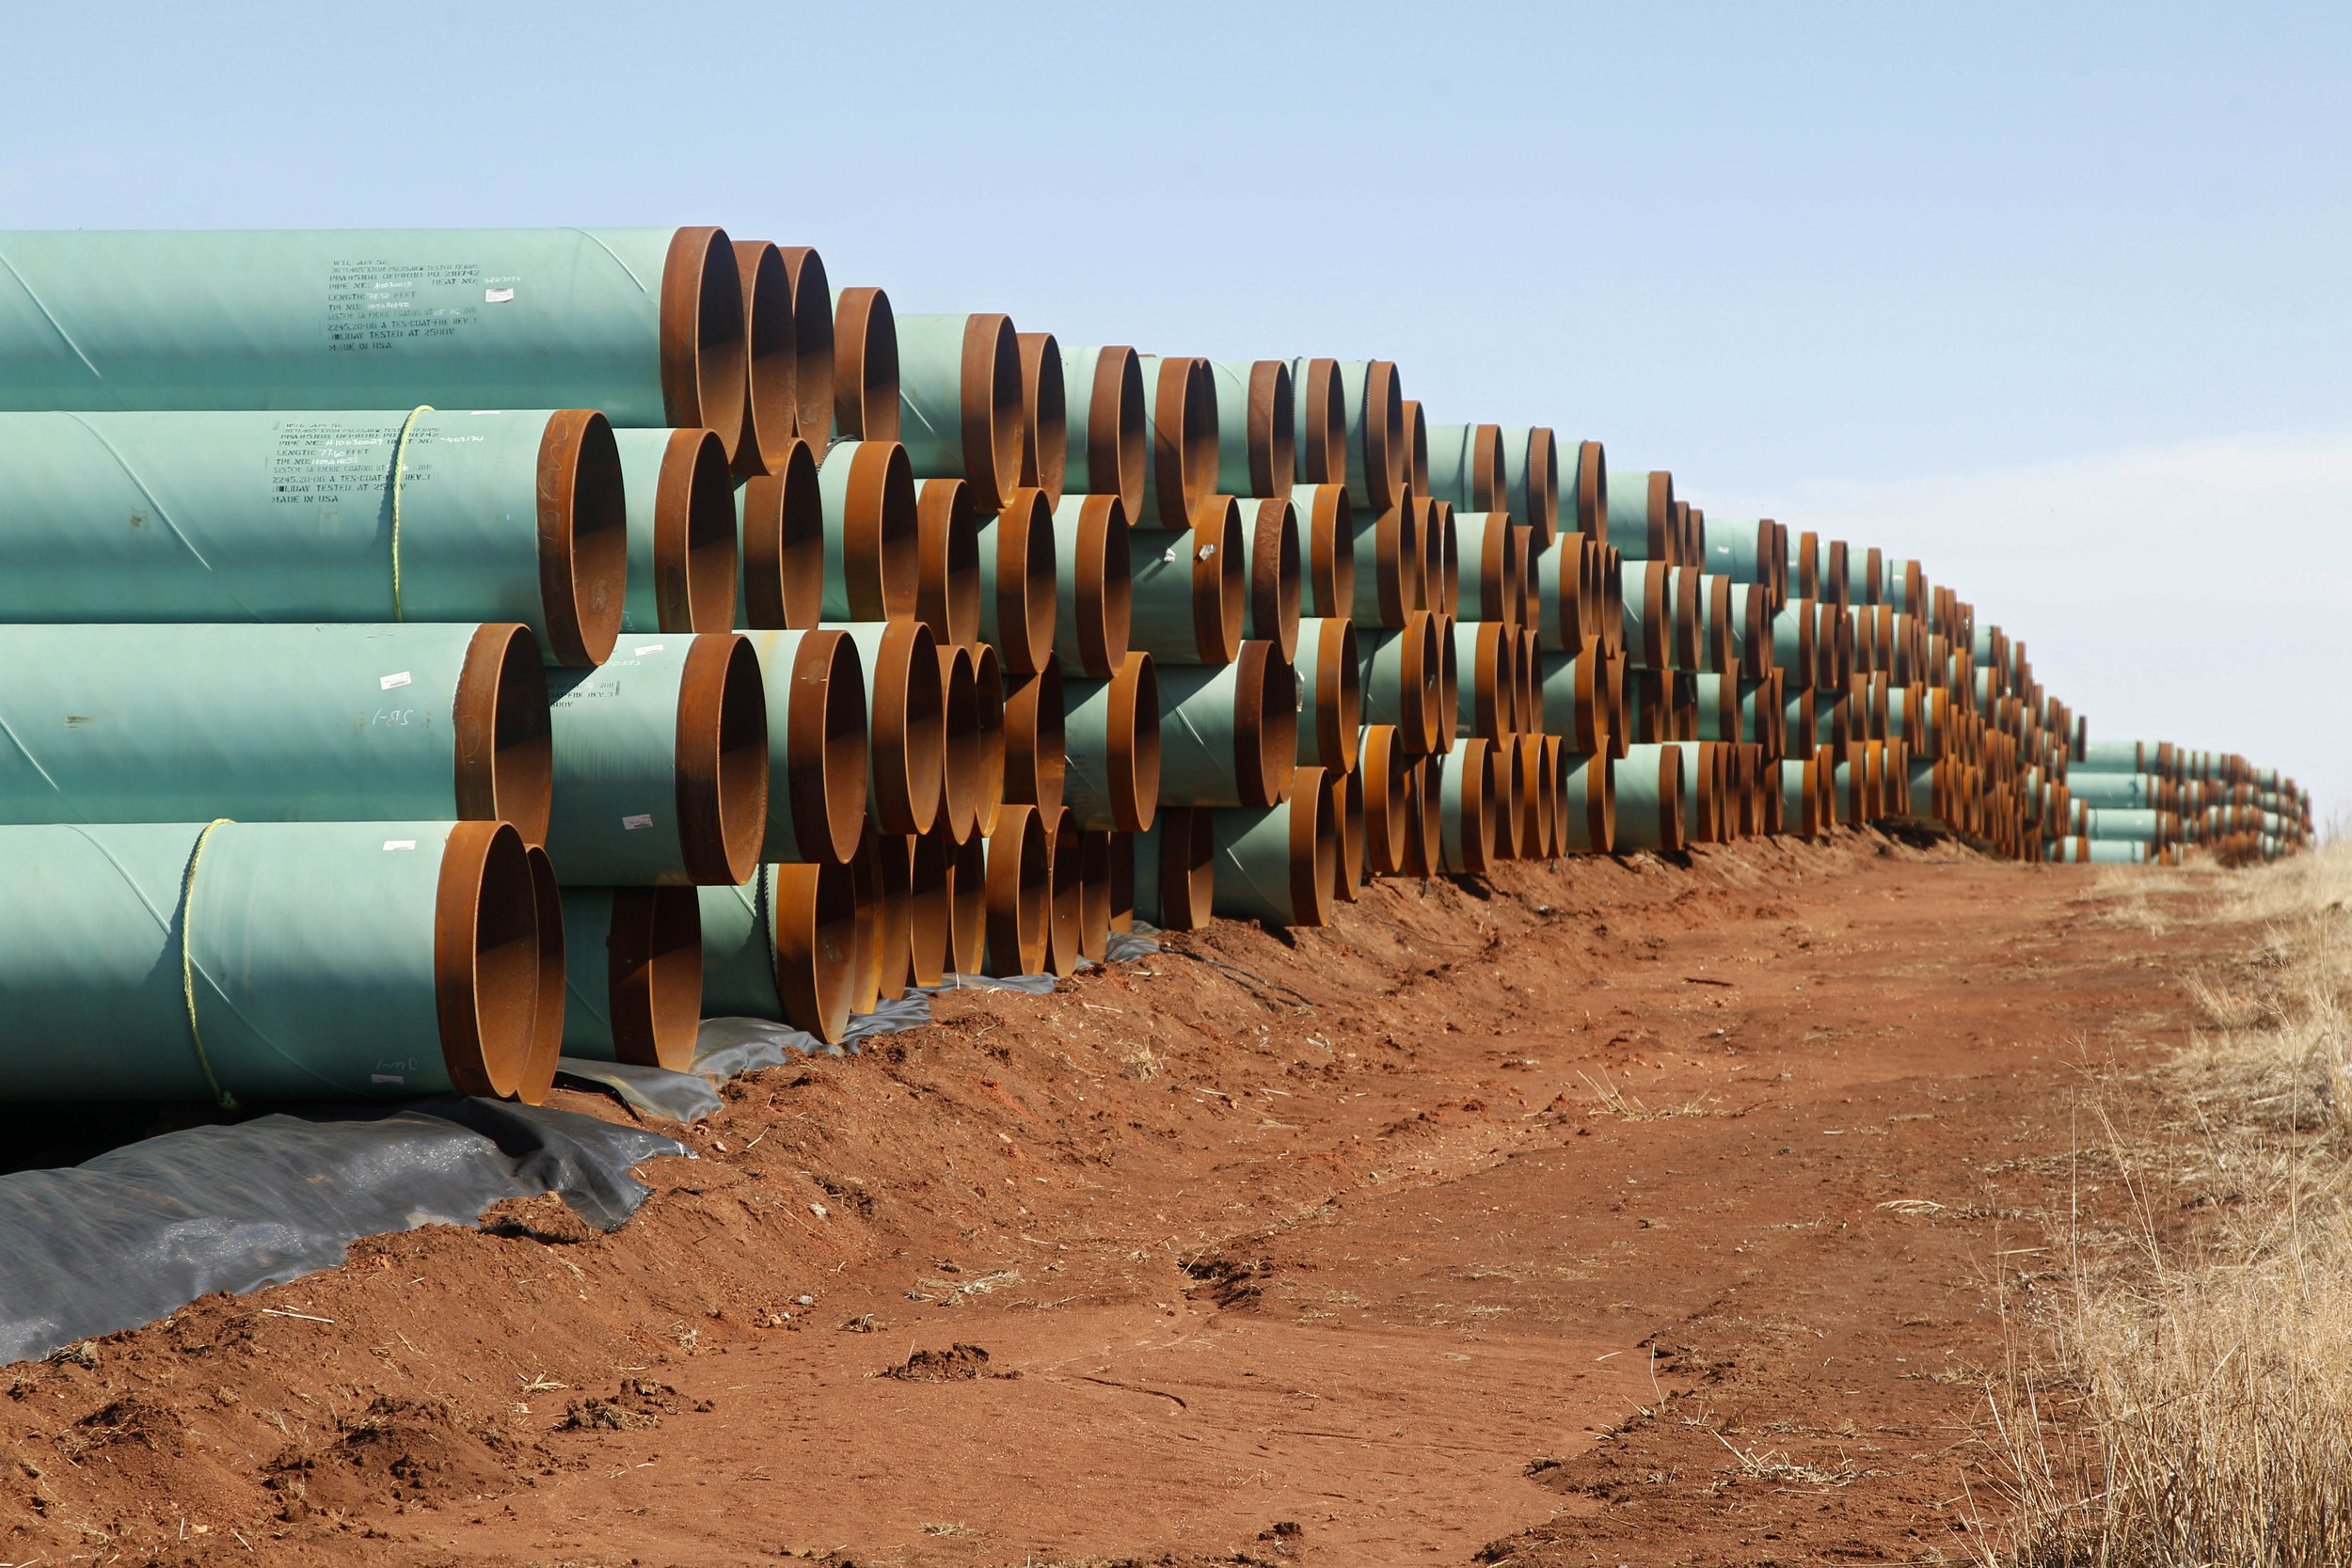 The trans mountain pipeline and tanker project - If approved, this toxic project would send hundreds of thousands of barrels per year of tar sands oil from northern Alberta to the Pacific coast, where it would be loaded onto massive oil tankers and shipped down the coast.